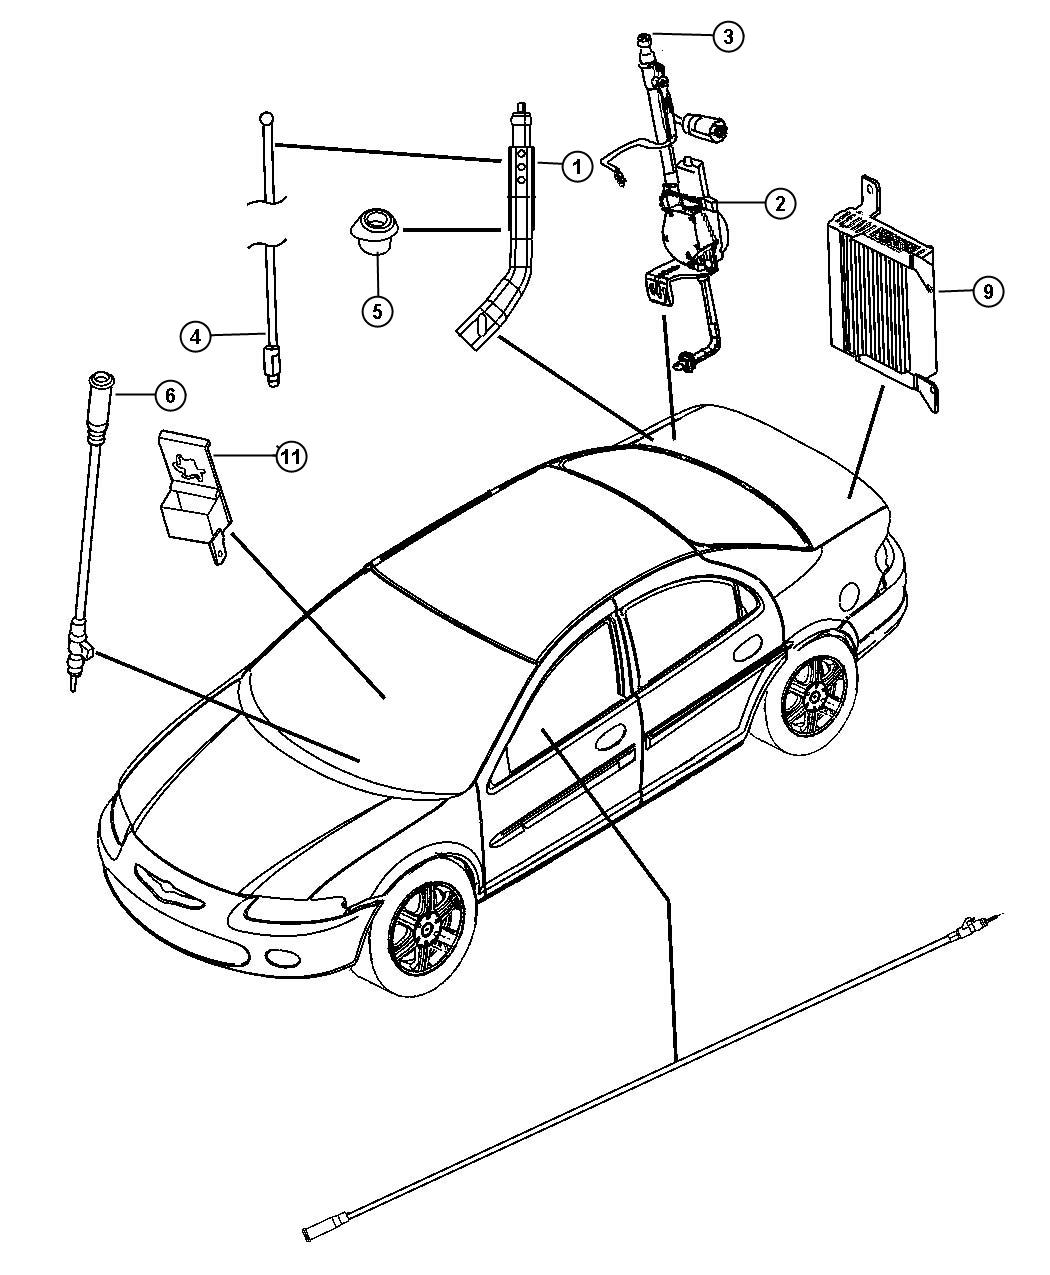 Chrysler Sebring Antenna And Related Parts